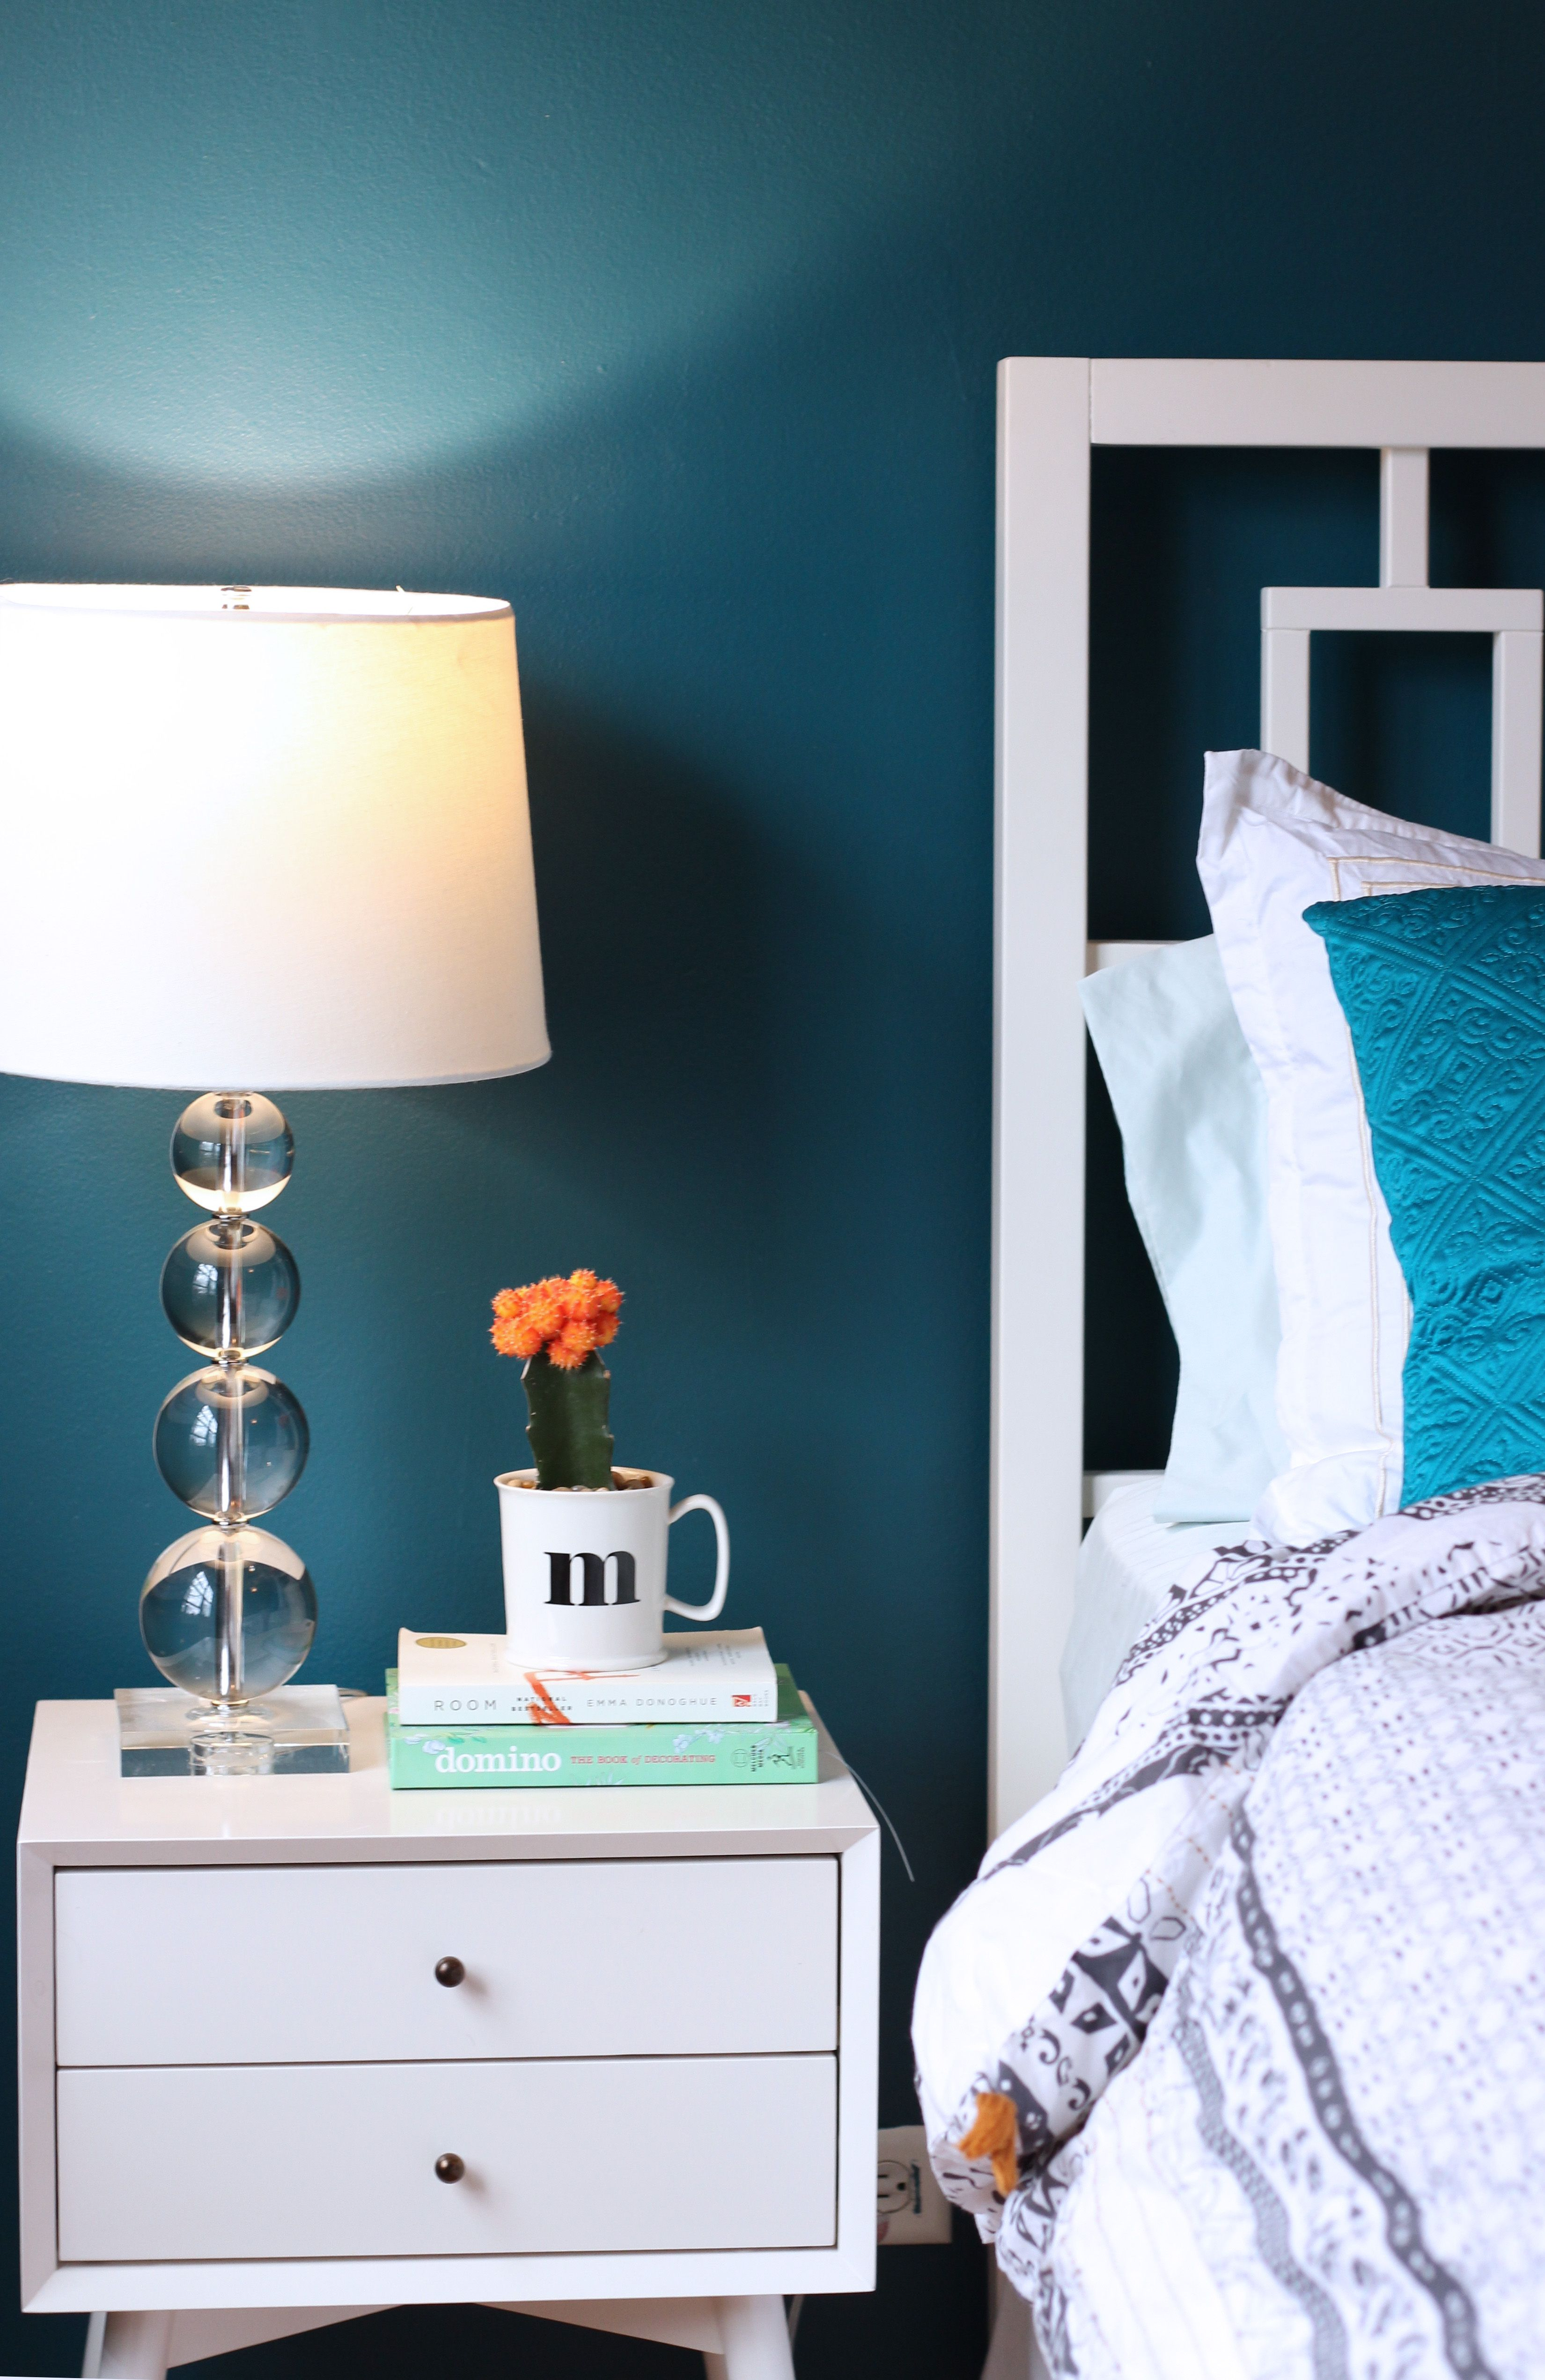 New Colours For Bedrooms New Bedroom Paint Color And Painting Lessons Learned For